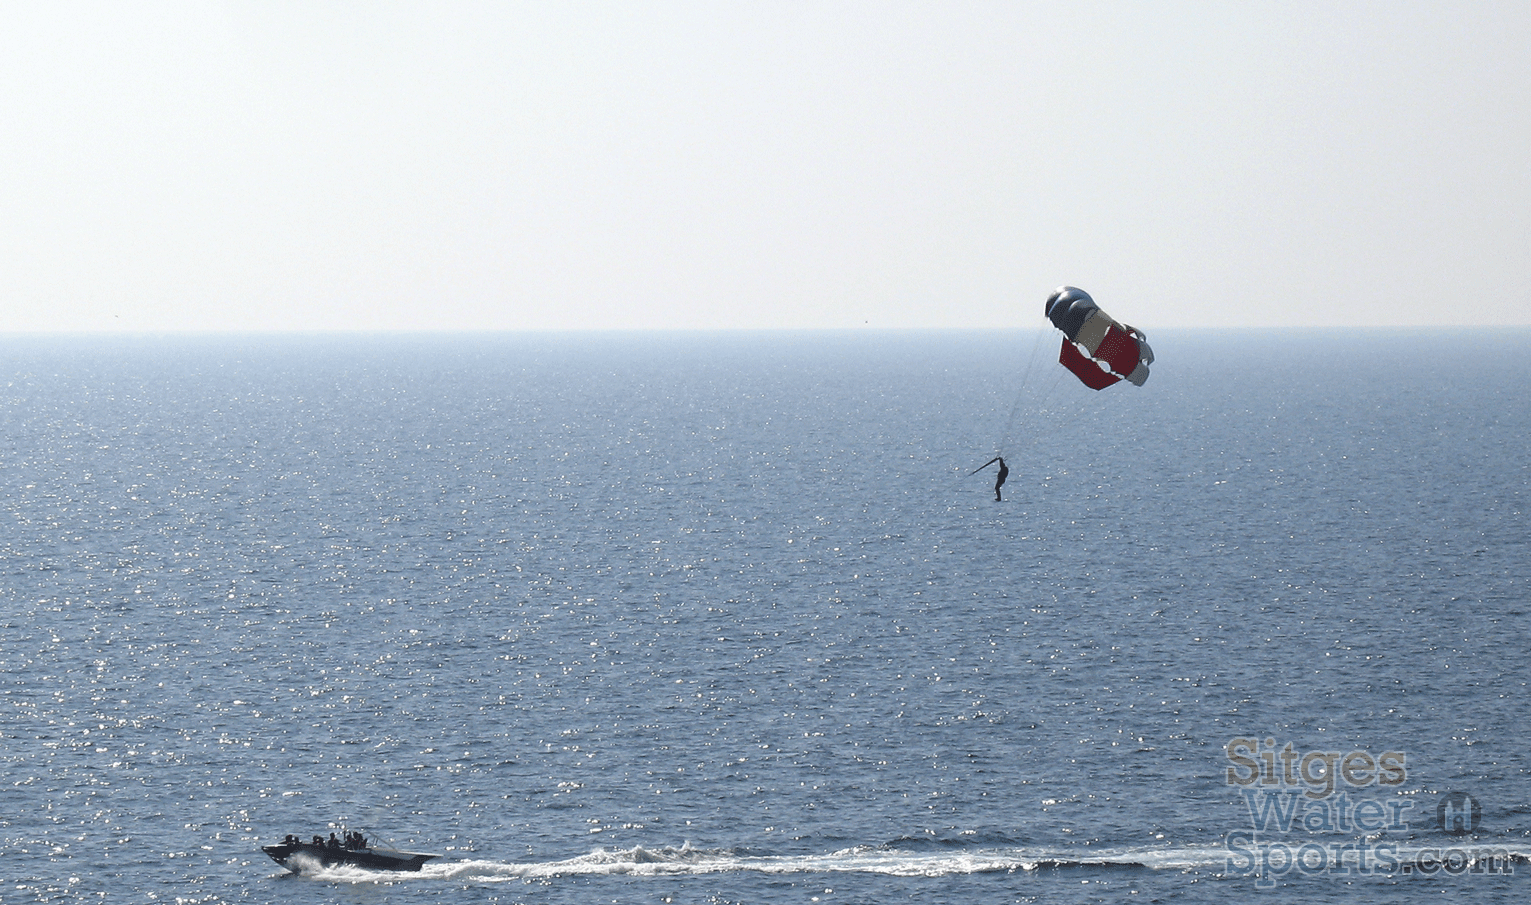 Parasailing in Sitges